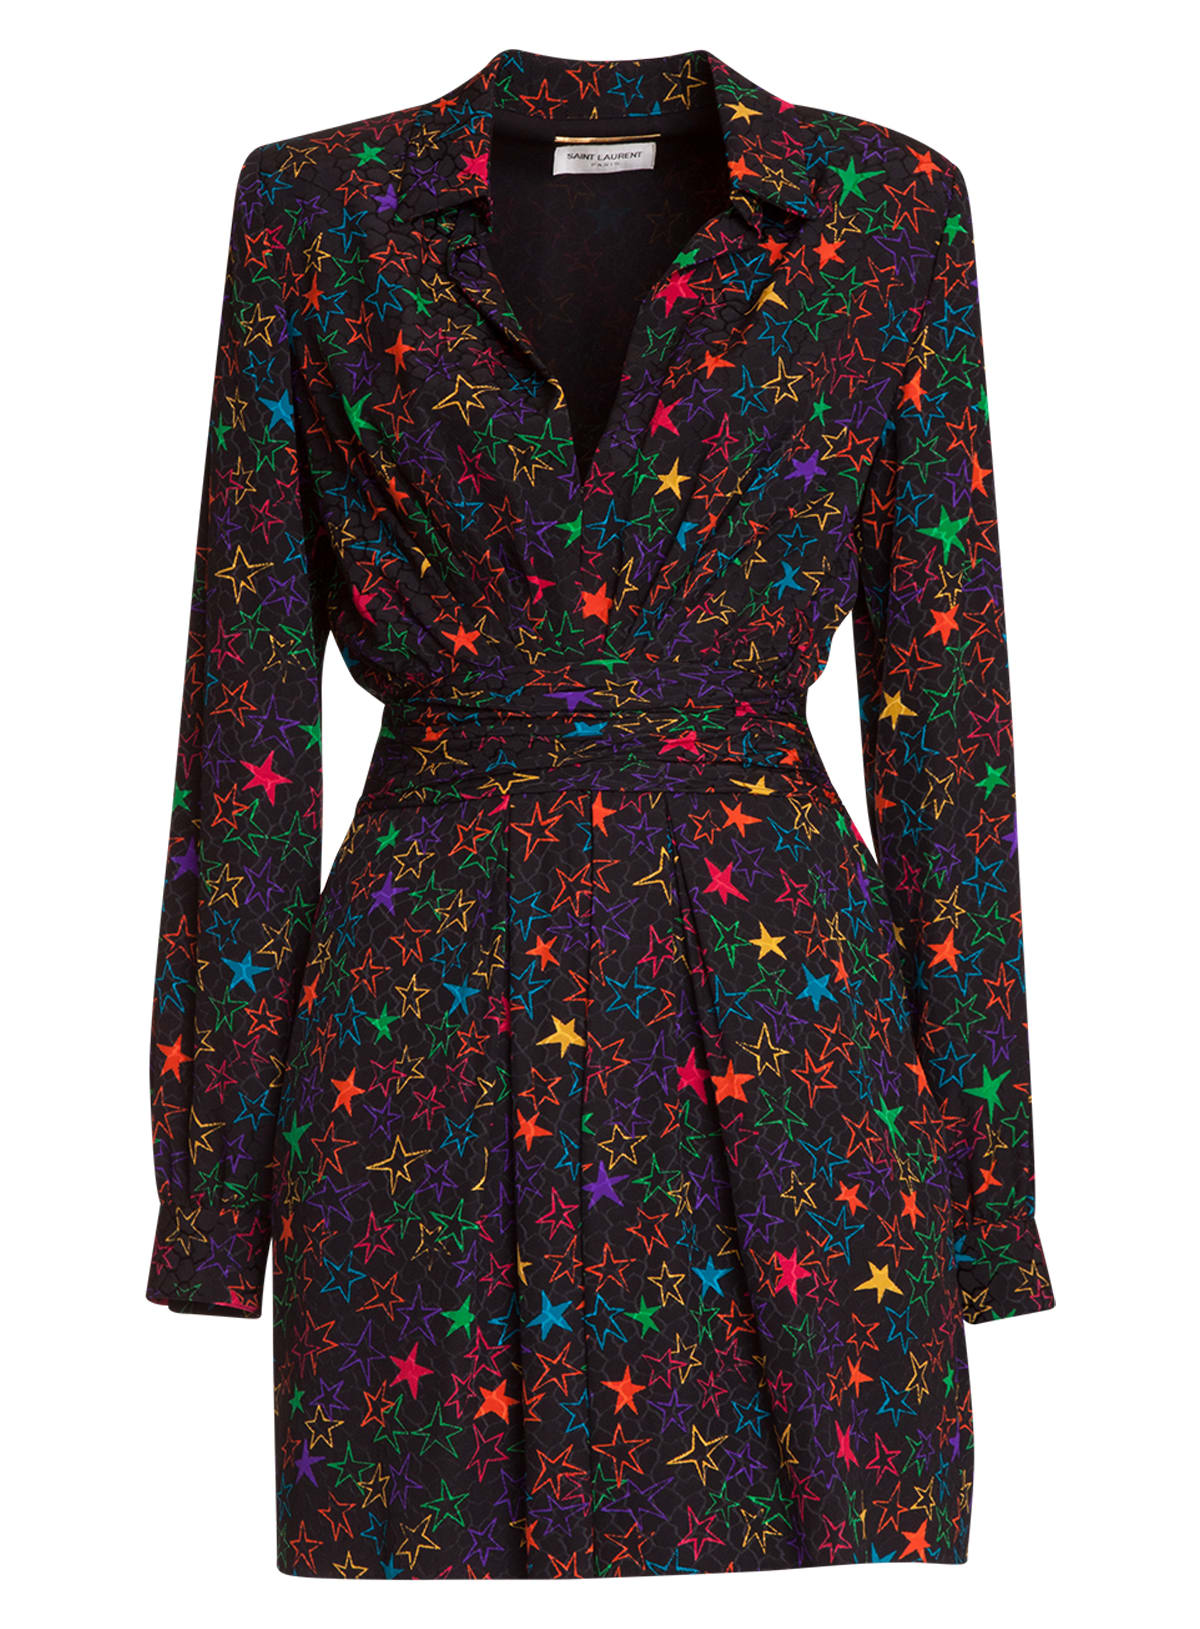 Saint Laurent Printed Crepe Dress